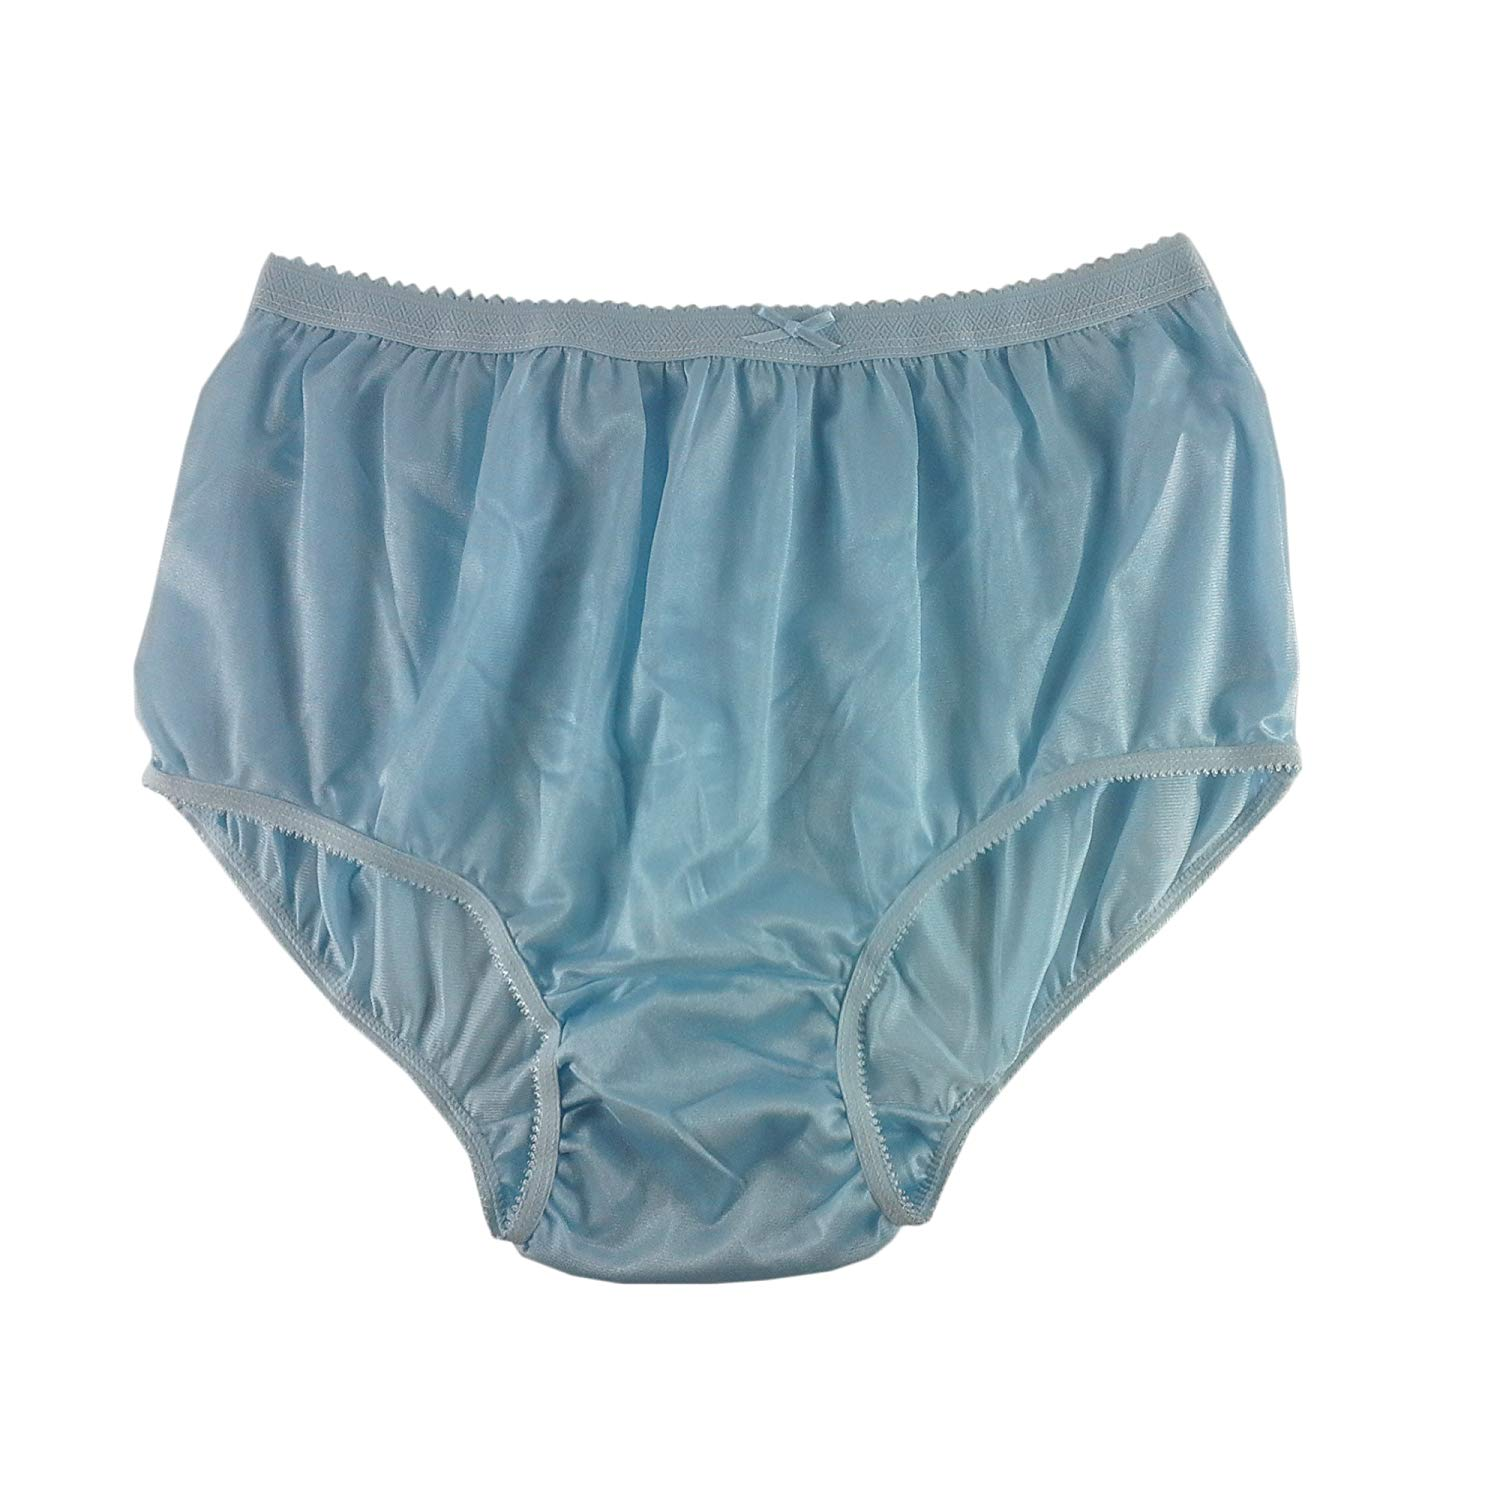 Find Granny Panties Images